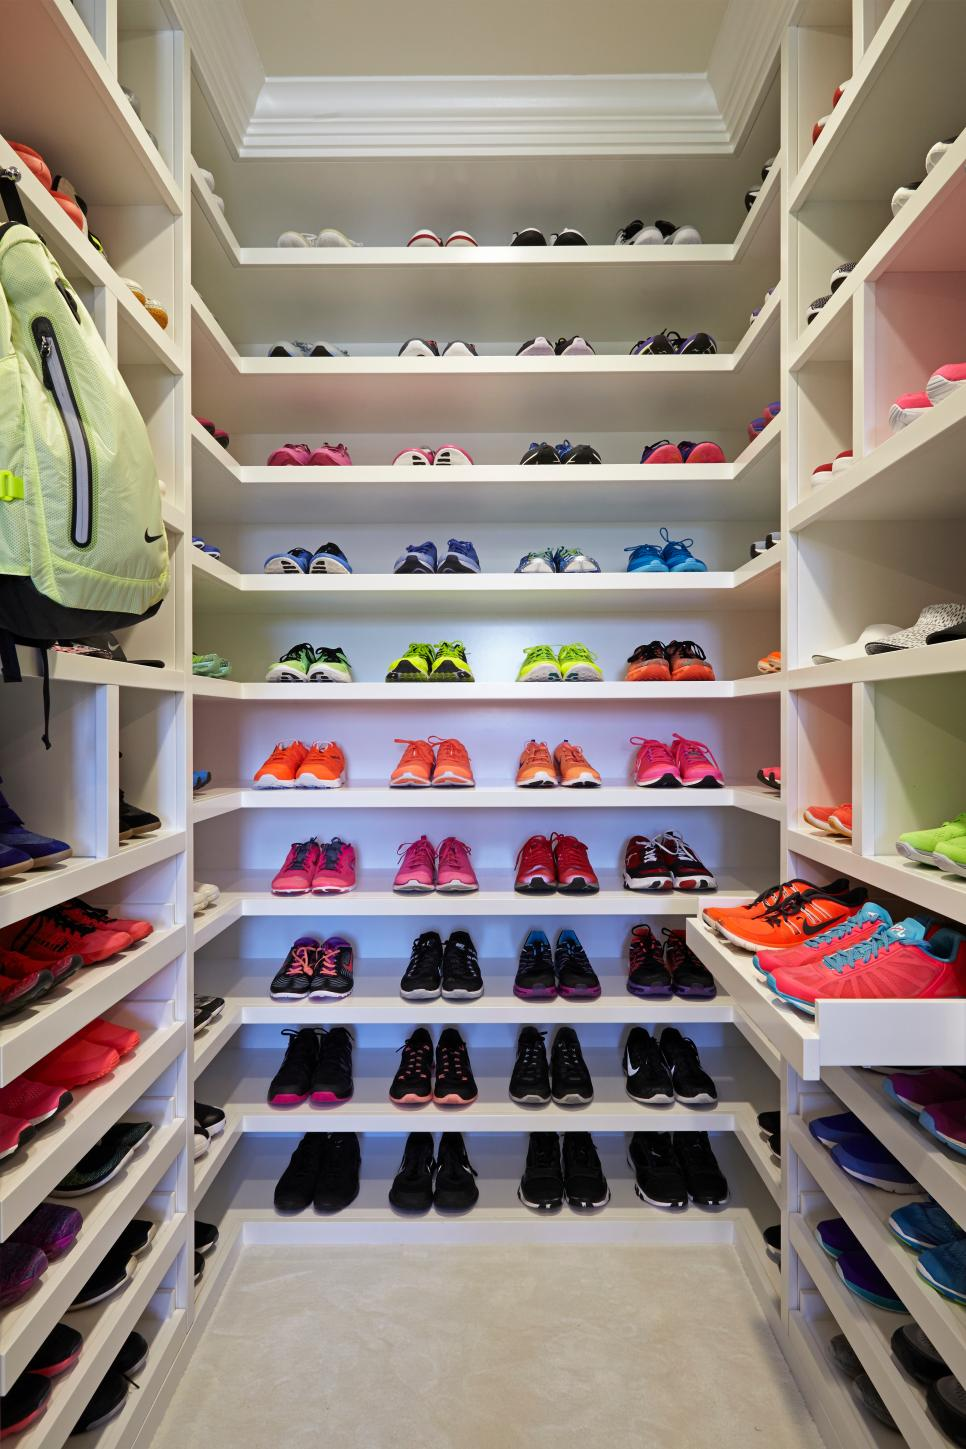 Walk-in closet for shoes